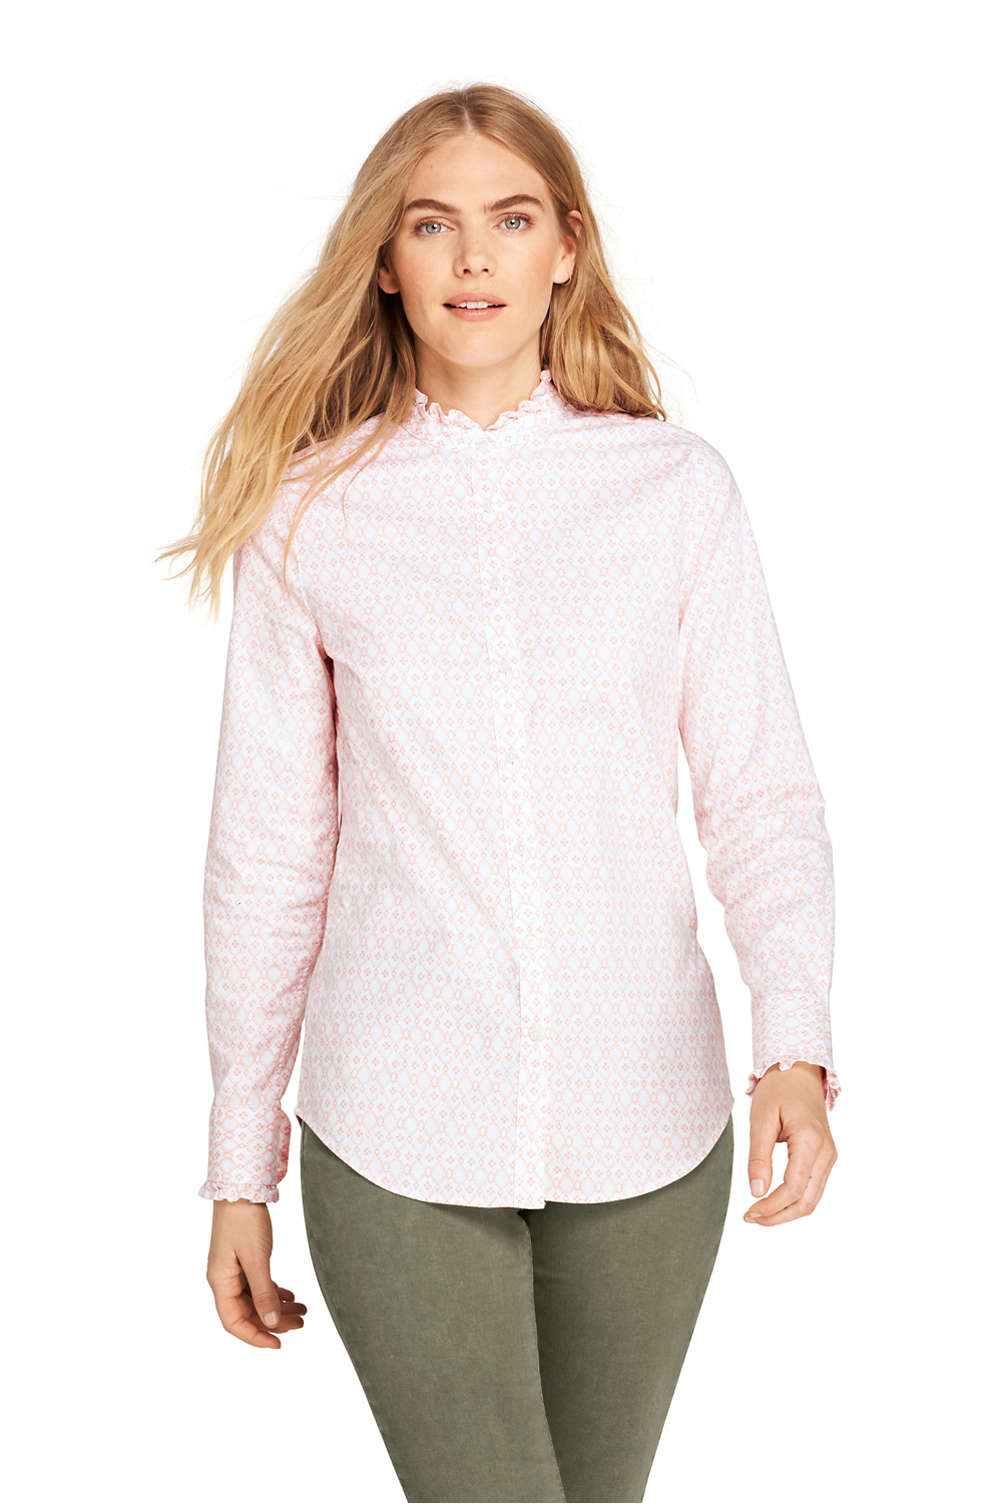 c12e5994667be0 Women's Ruffle Oxford Shirt from Lands' End